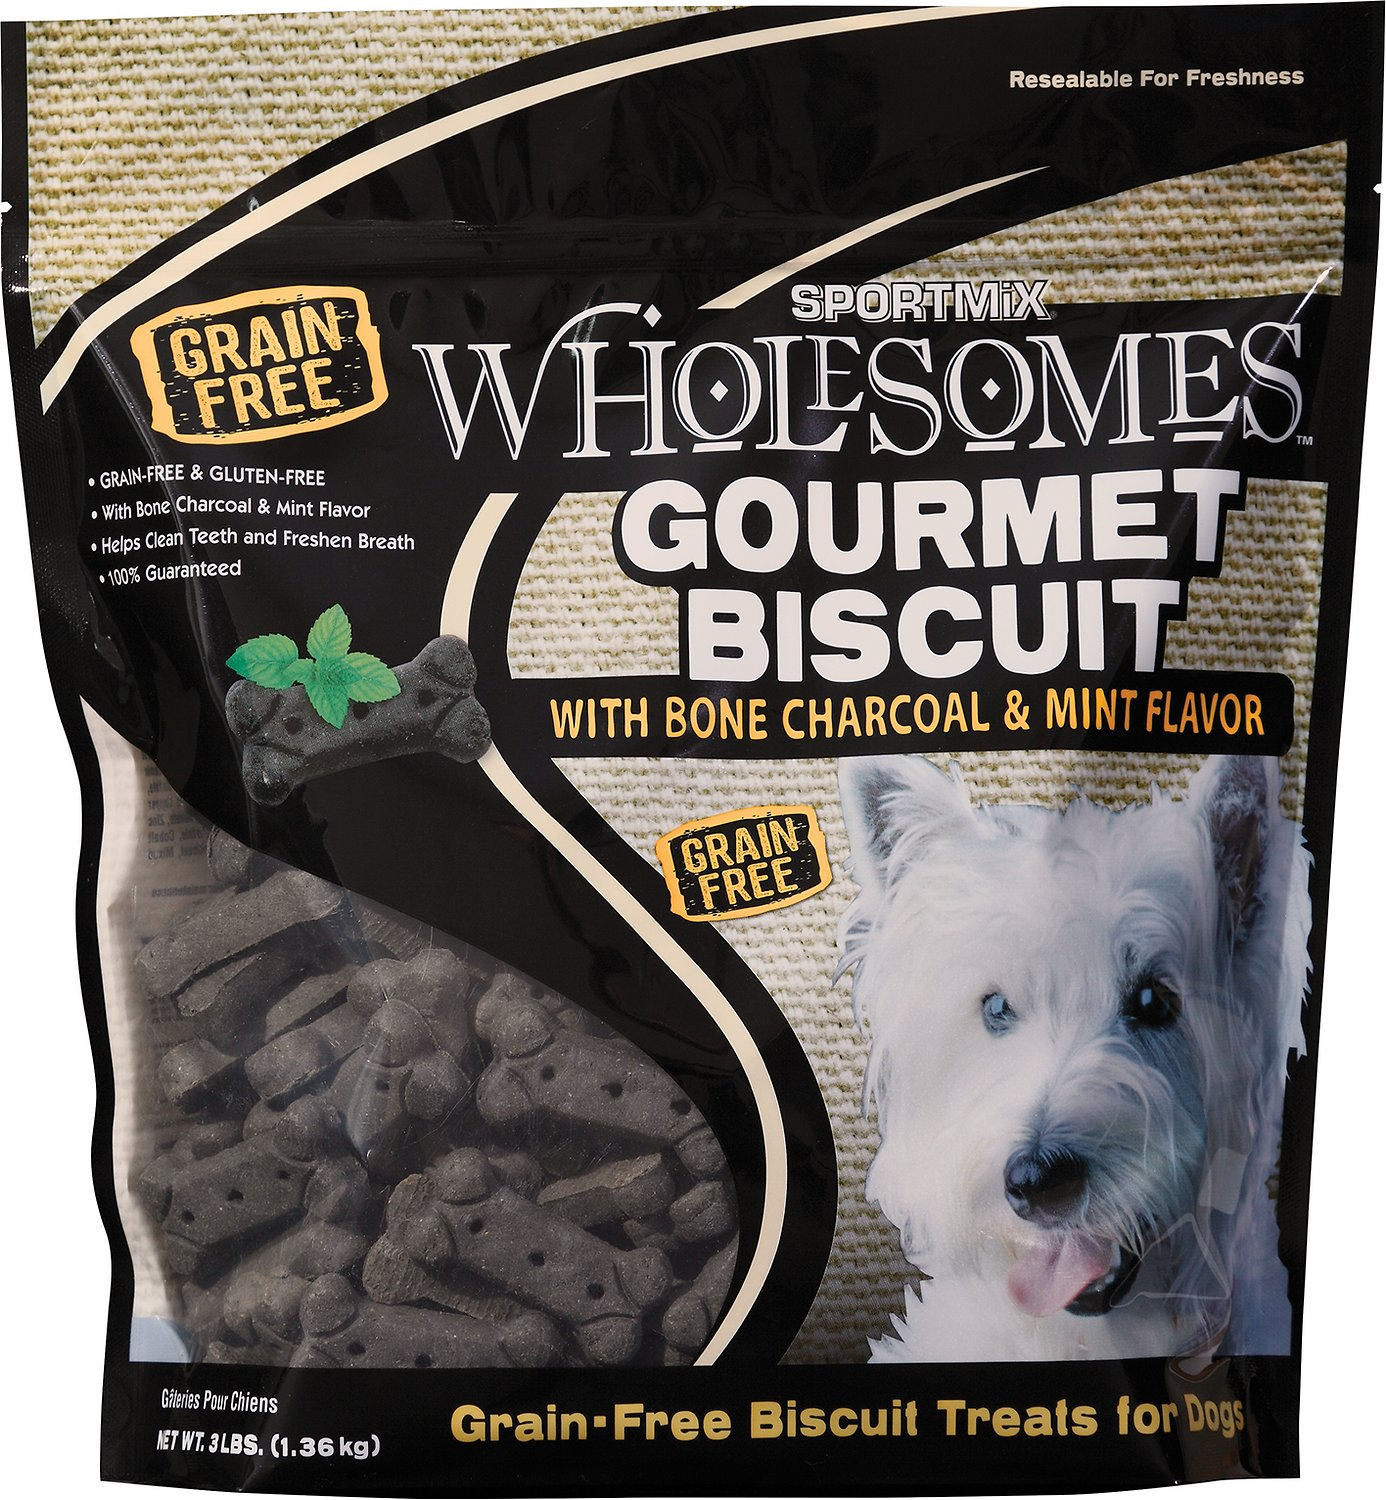 SPORTMiX Wholesomes Grain-Free Premium Medium Gourmet Biscuit with Natural Bone Charcoal & Mint Flavor Dog Treats